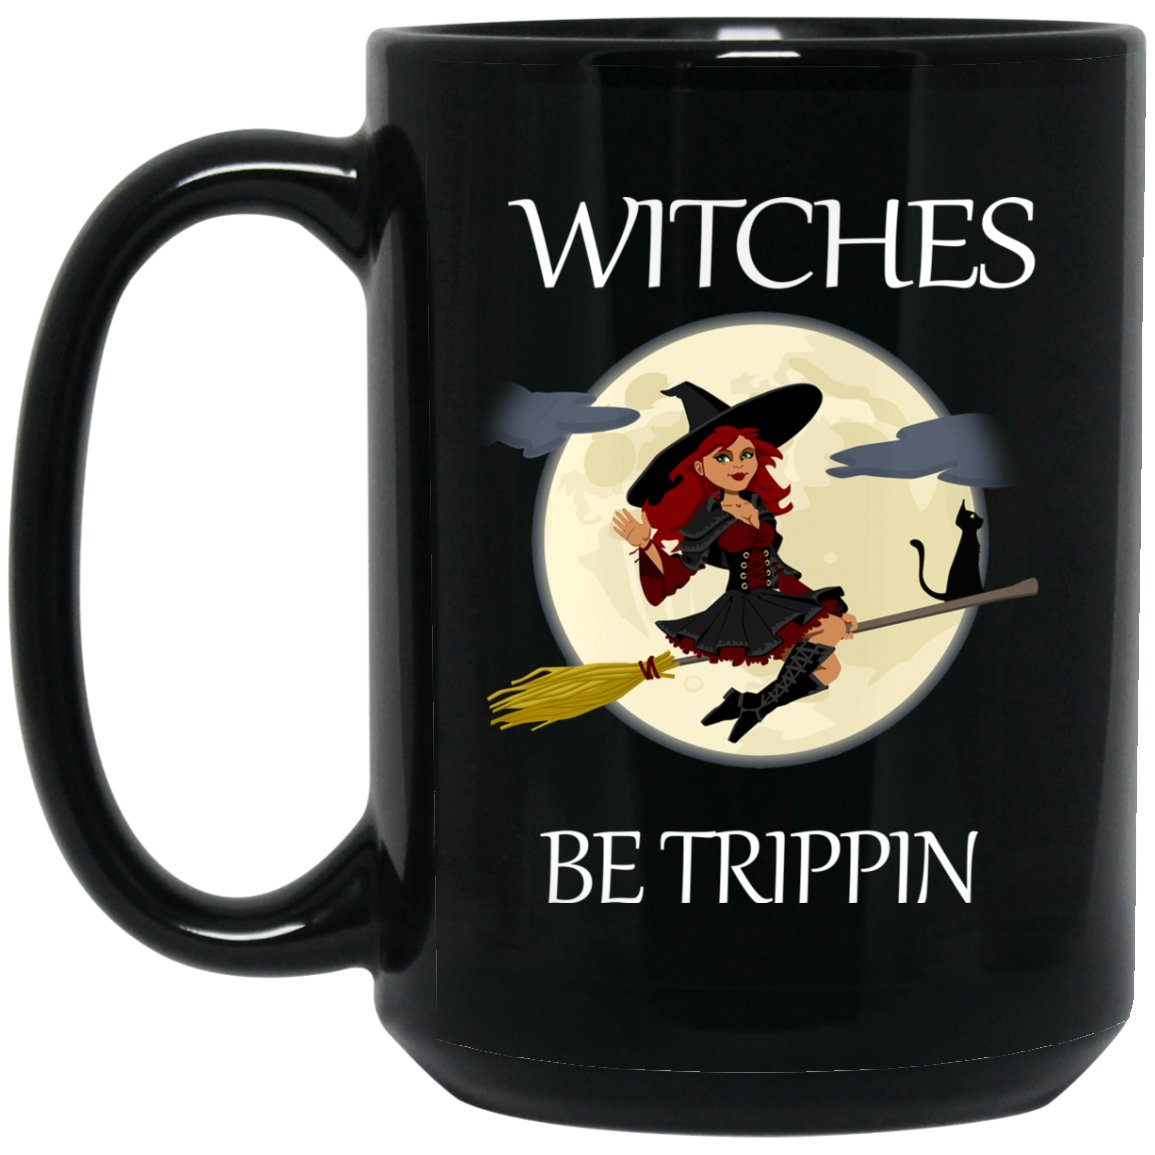 Funny Witch Clothing - Witches Be Trippin Large Black Mug